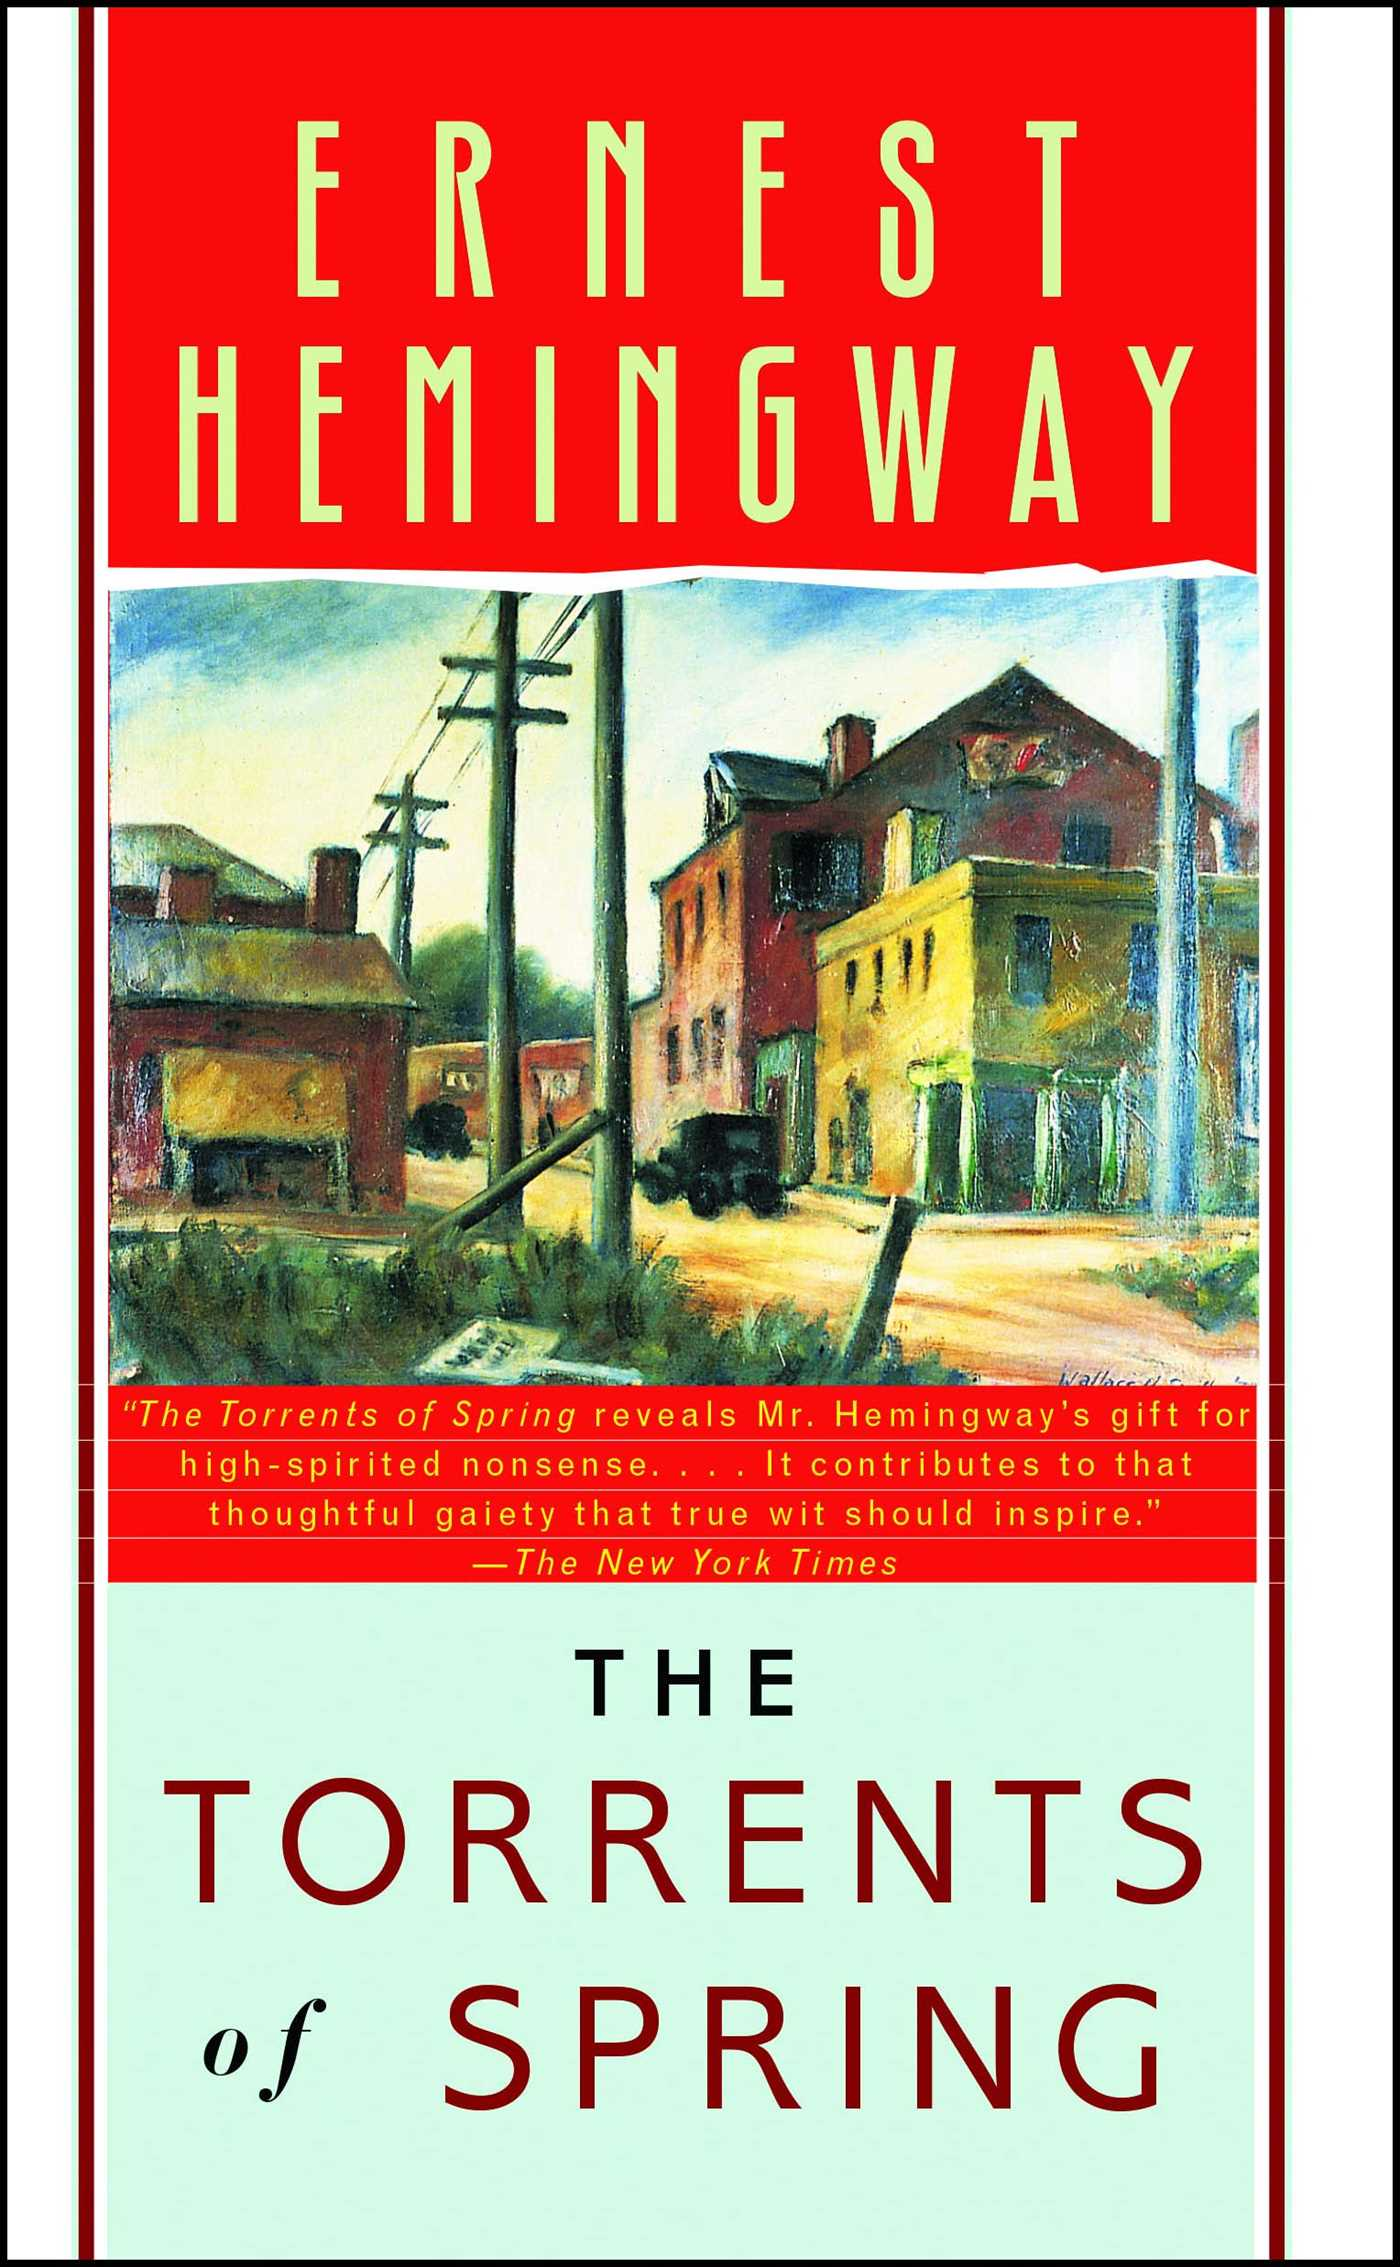 The torrents of spring | book by ernest hemingway | official.